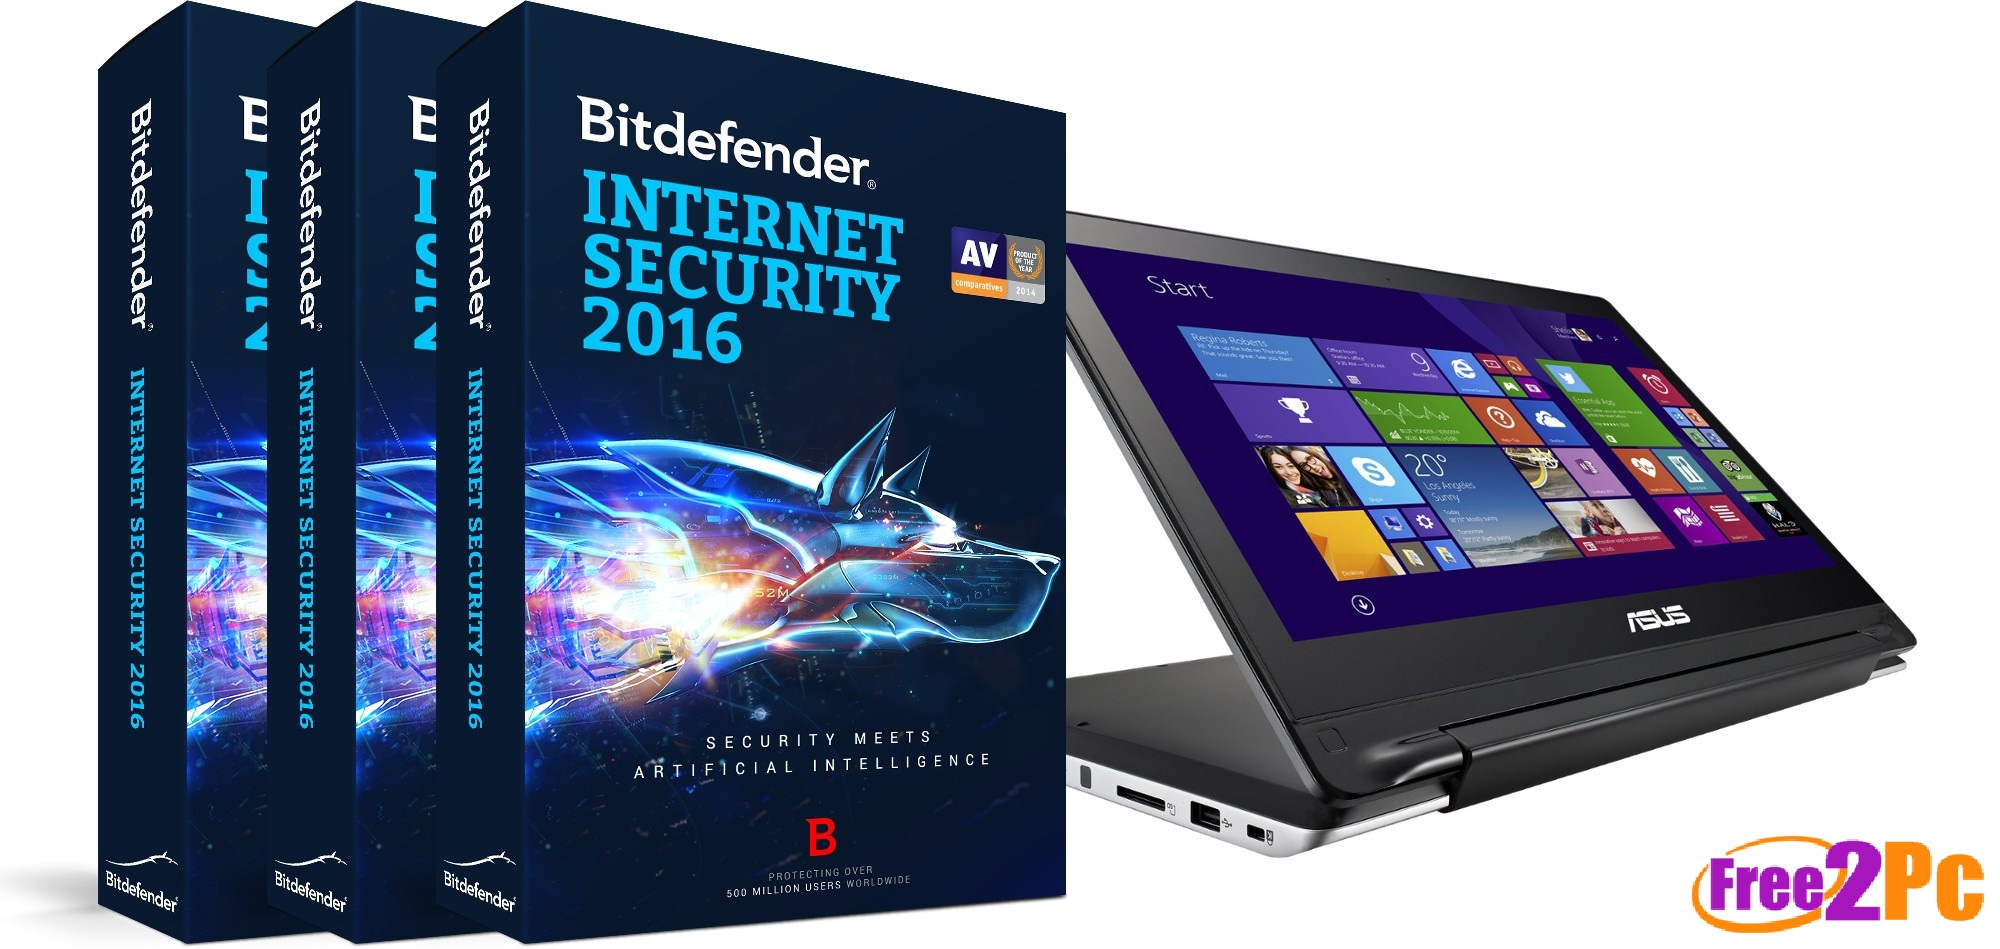 Bitdefender Internet Security 2016 Key Free Download Full Version With Cracked